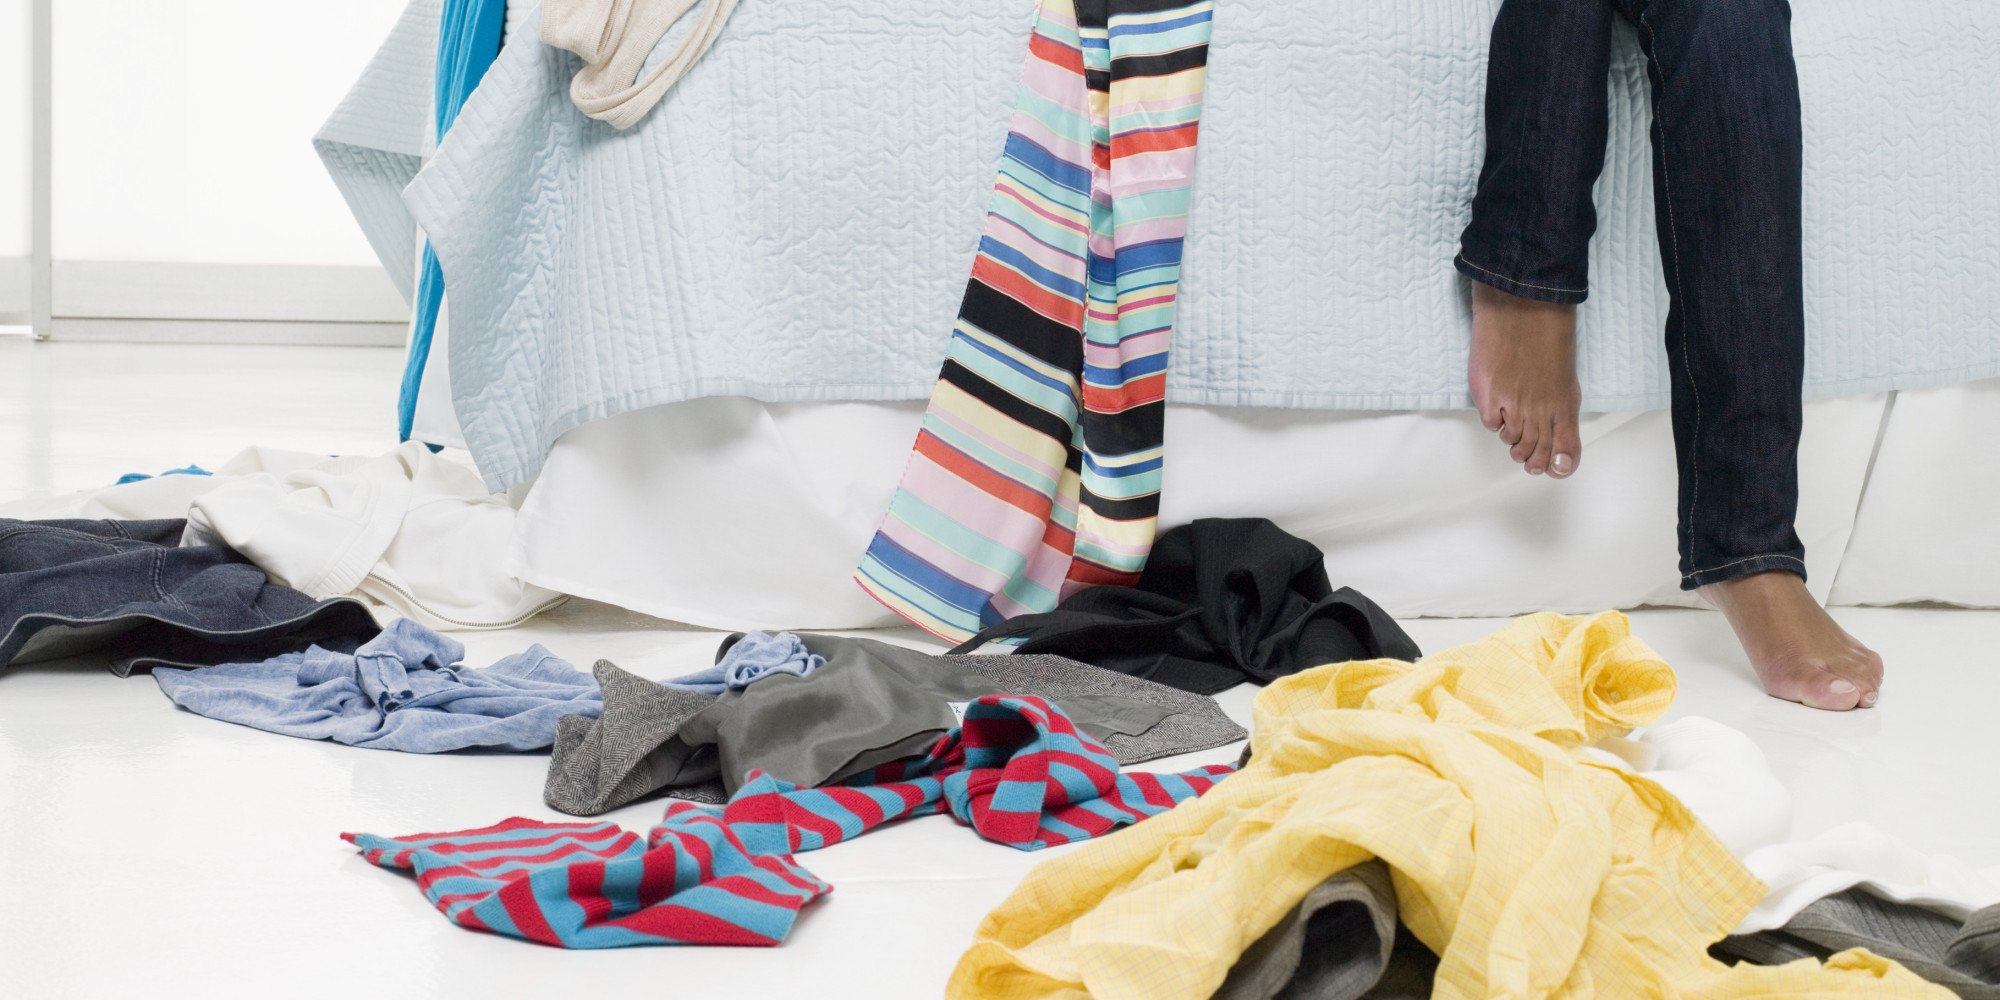 how to clean a room fast a really messy room